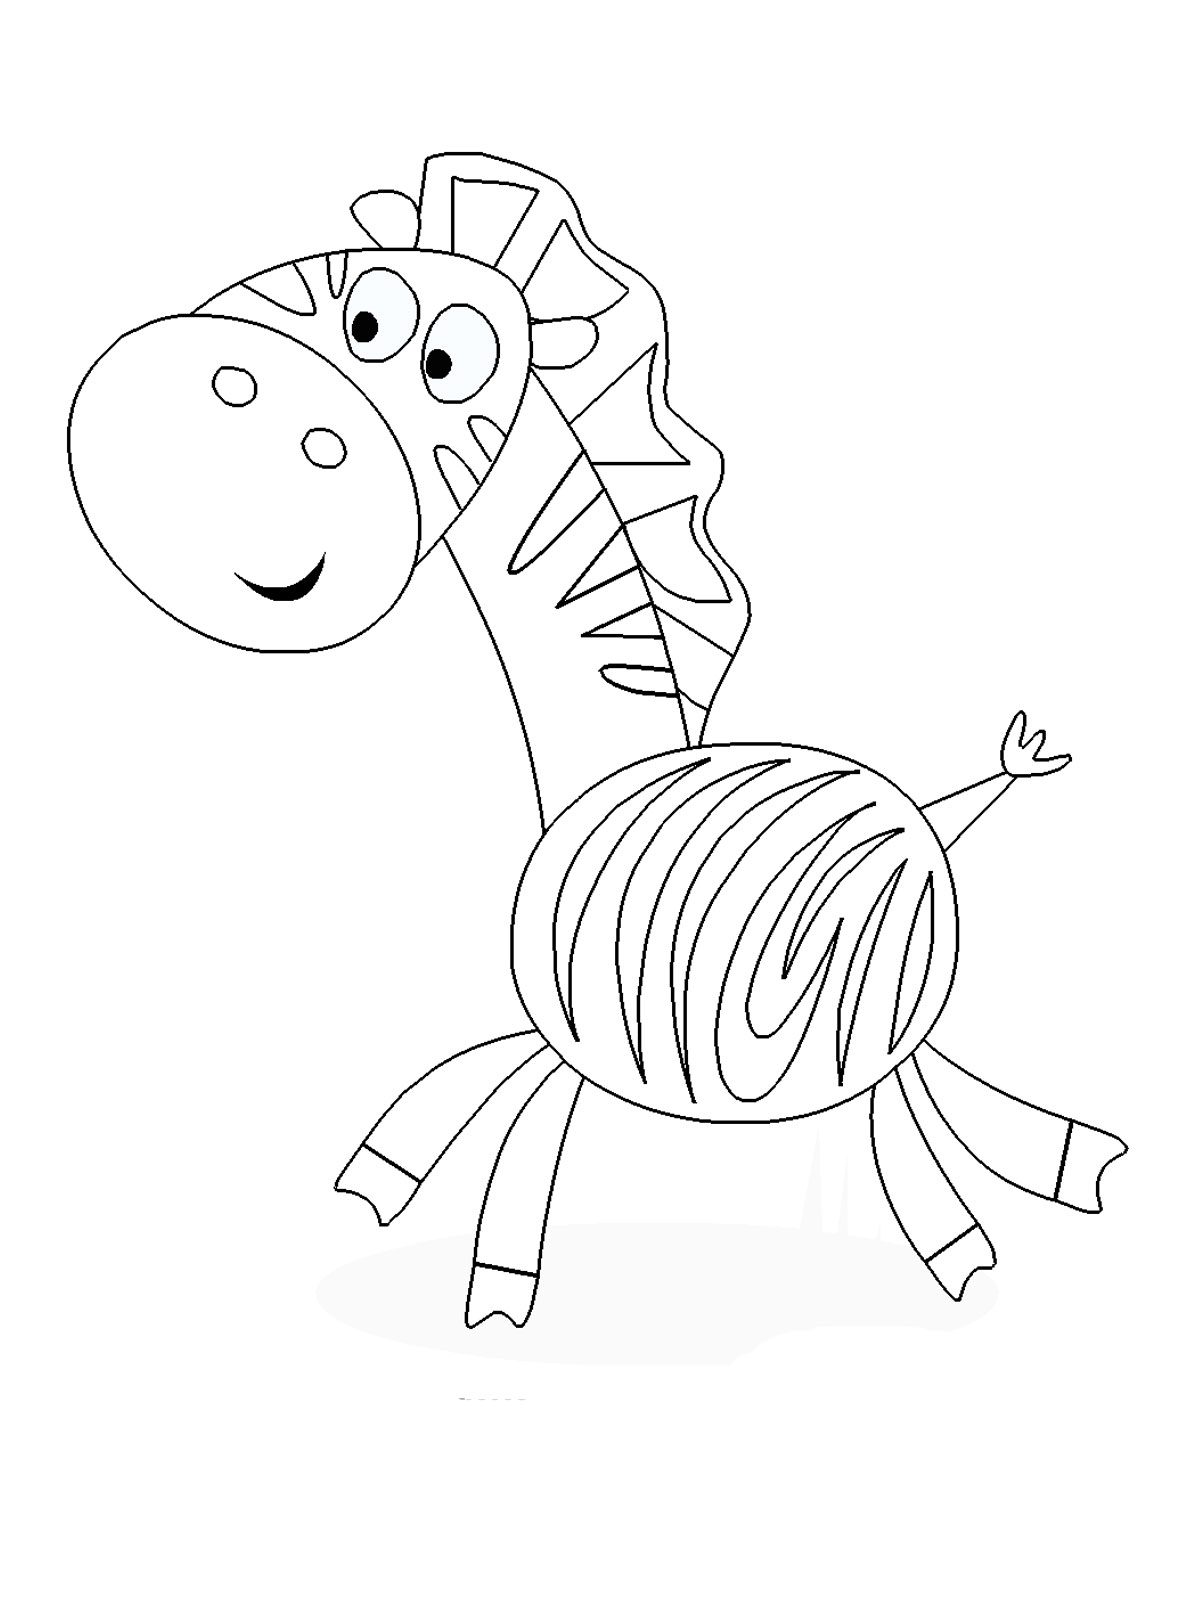 coloring pages for teenagers printable 40 free printable coloring pages for kids coloring pages teenagers printable for